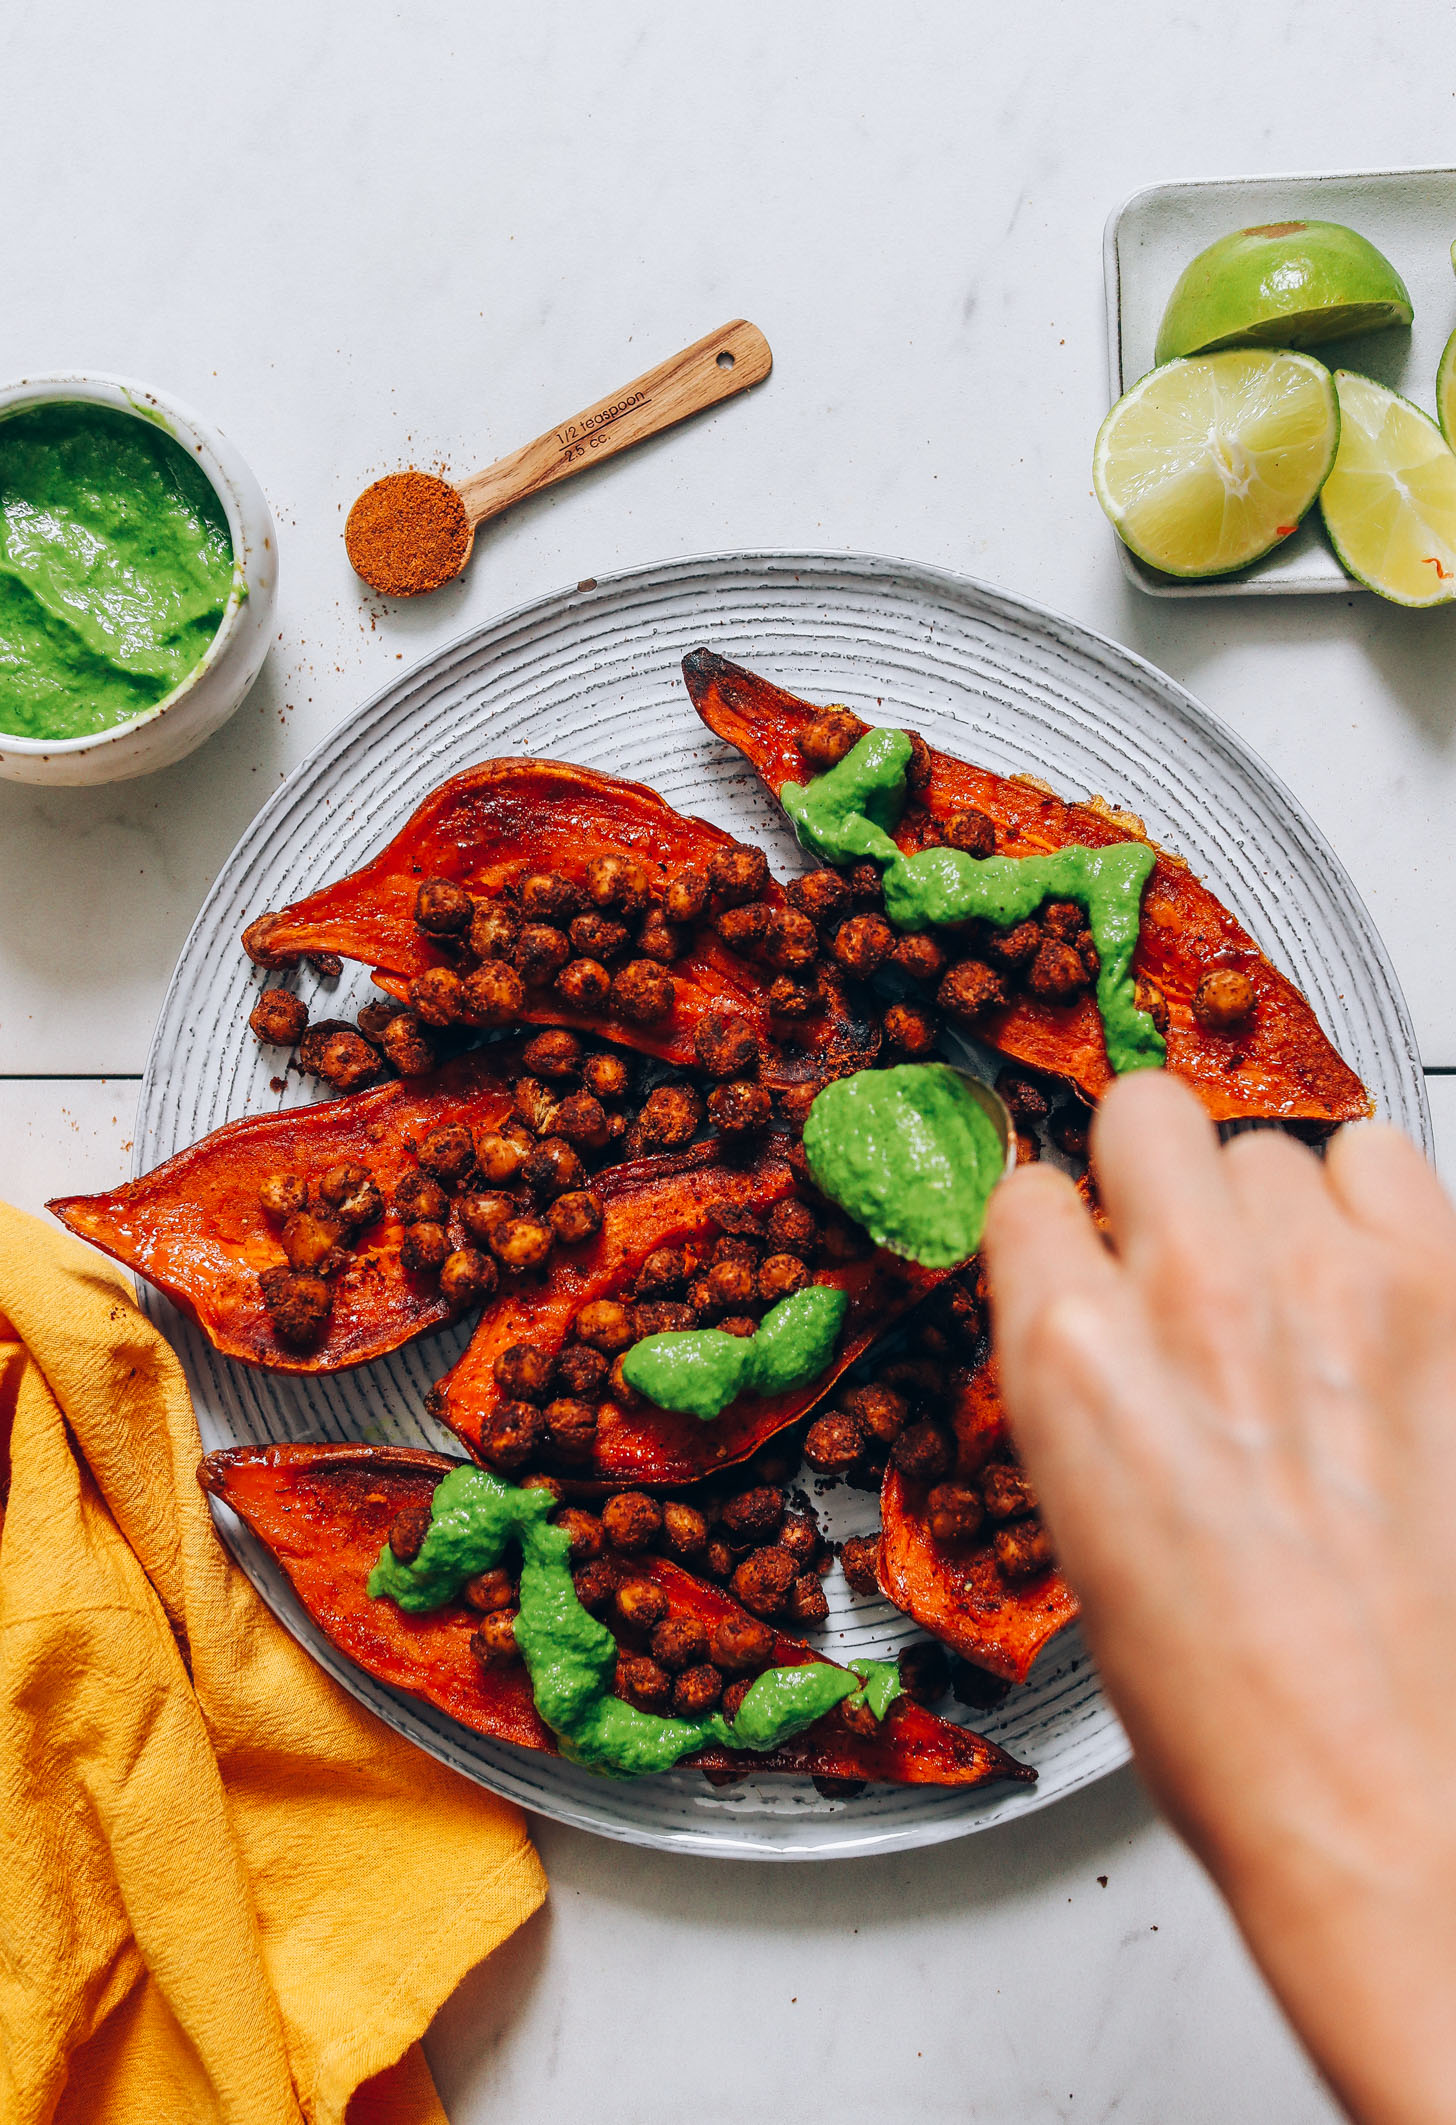 Drizzling green chutney onto a plate of stuffed sweet potatoes